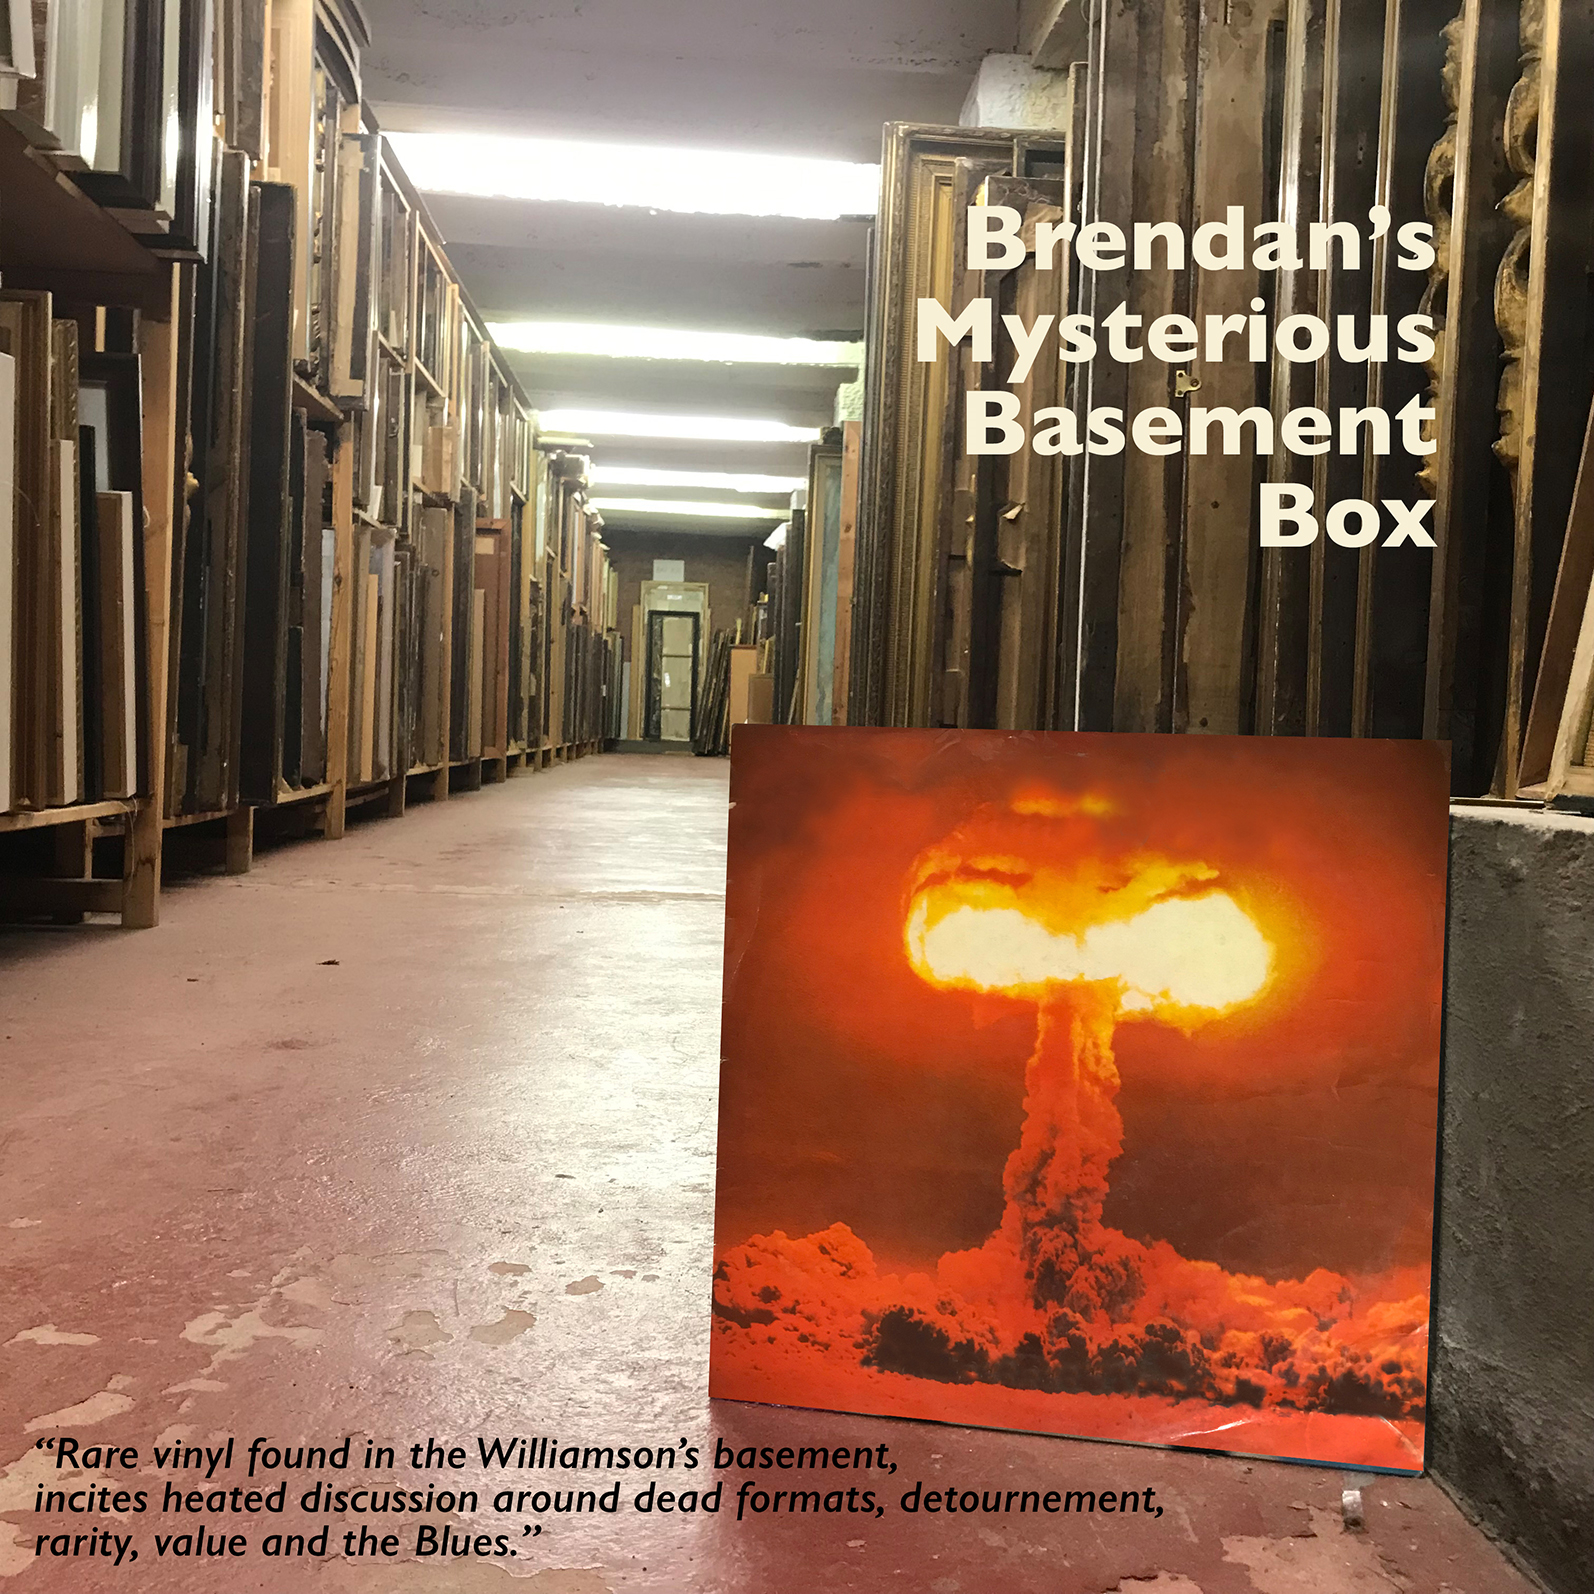 Williamson Art Gallery & Museum: Brendan's Mysterious Basement Box